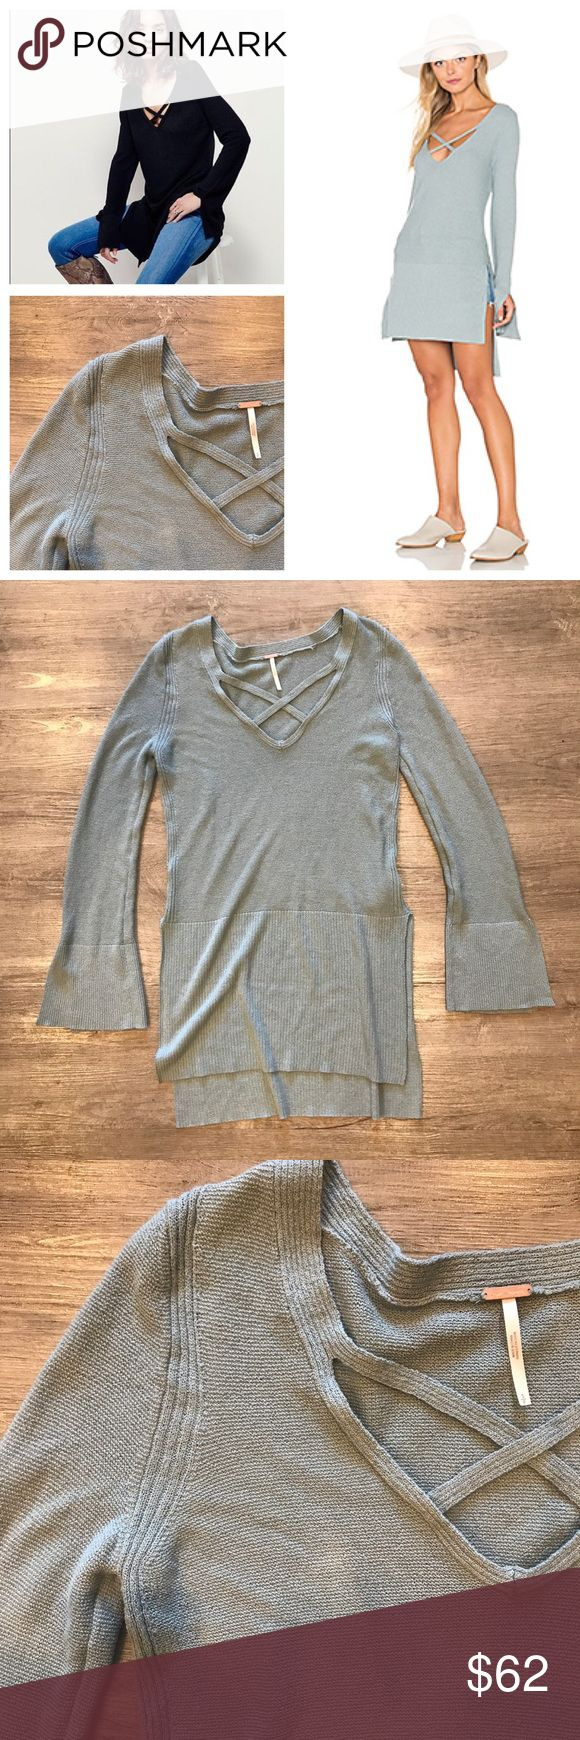 Free People CrissCross Sweater Gorgeous and on trend Free People CrissCross Sweater Tunic in Sky. Size small. In like new condition. Feel free to ask any questions below or make me an offer! Bundle to automatically save! Free People Sweaters V-Necks